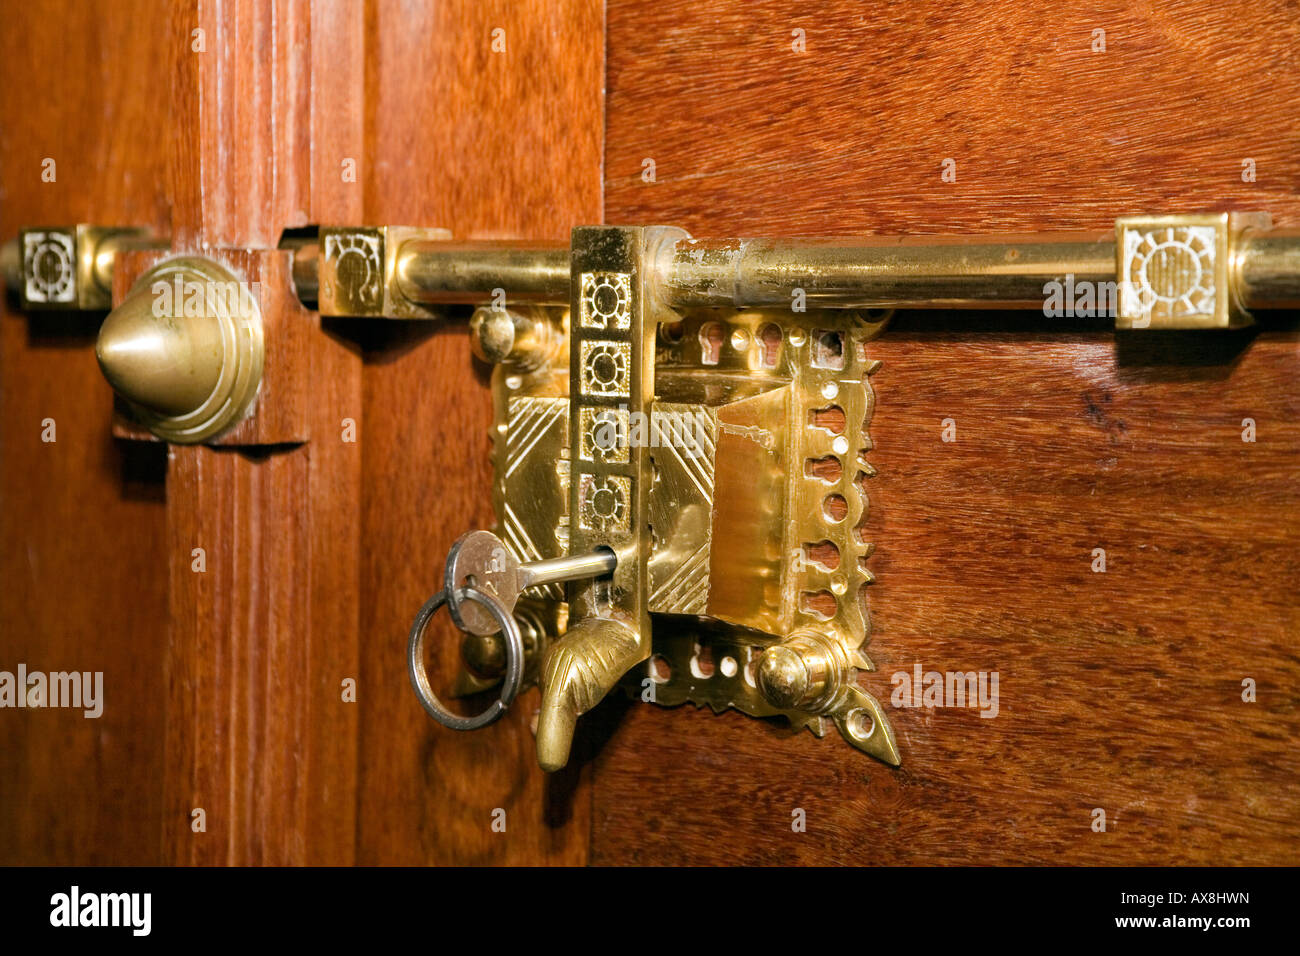 Antique Brass Door latch and Lock typical of traditional Keralite fittings  Kerala South India - Antique Brass Door Latch And Lock Typical Of Traditional Keralite